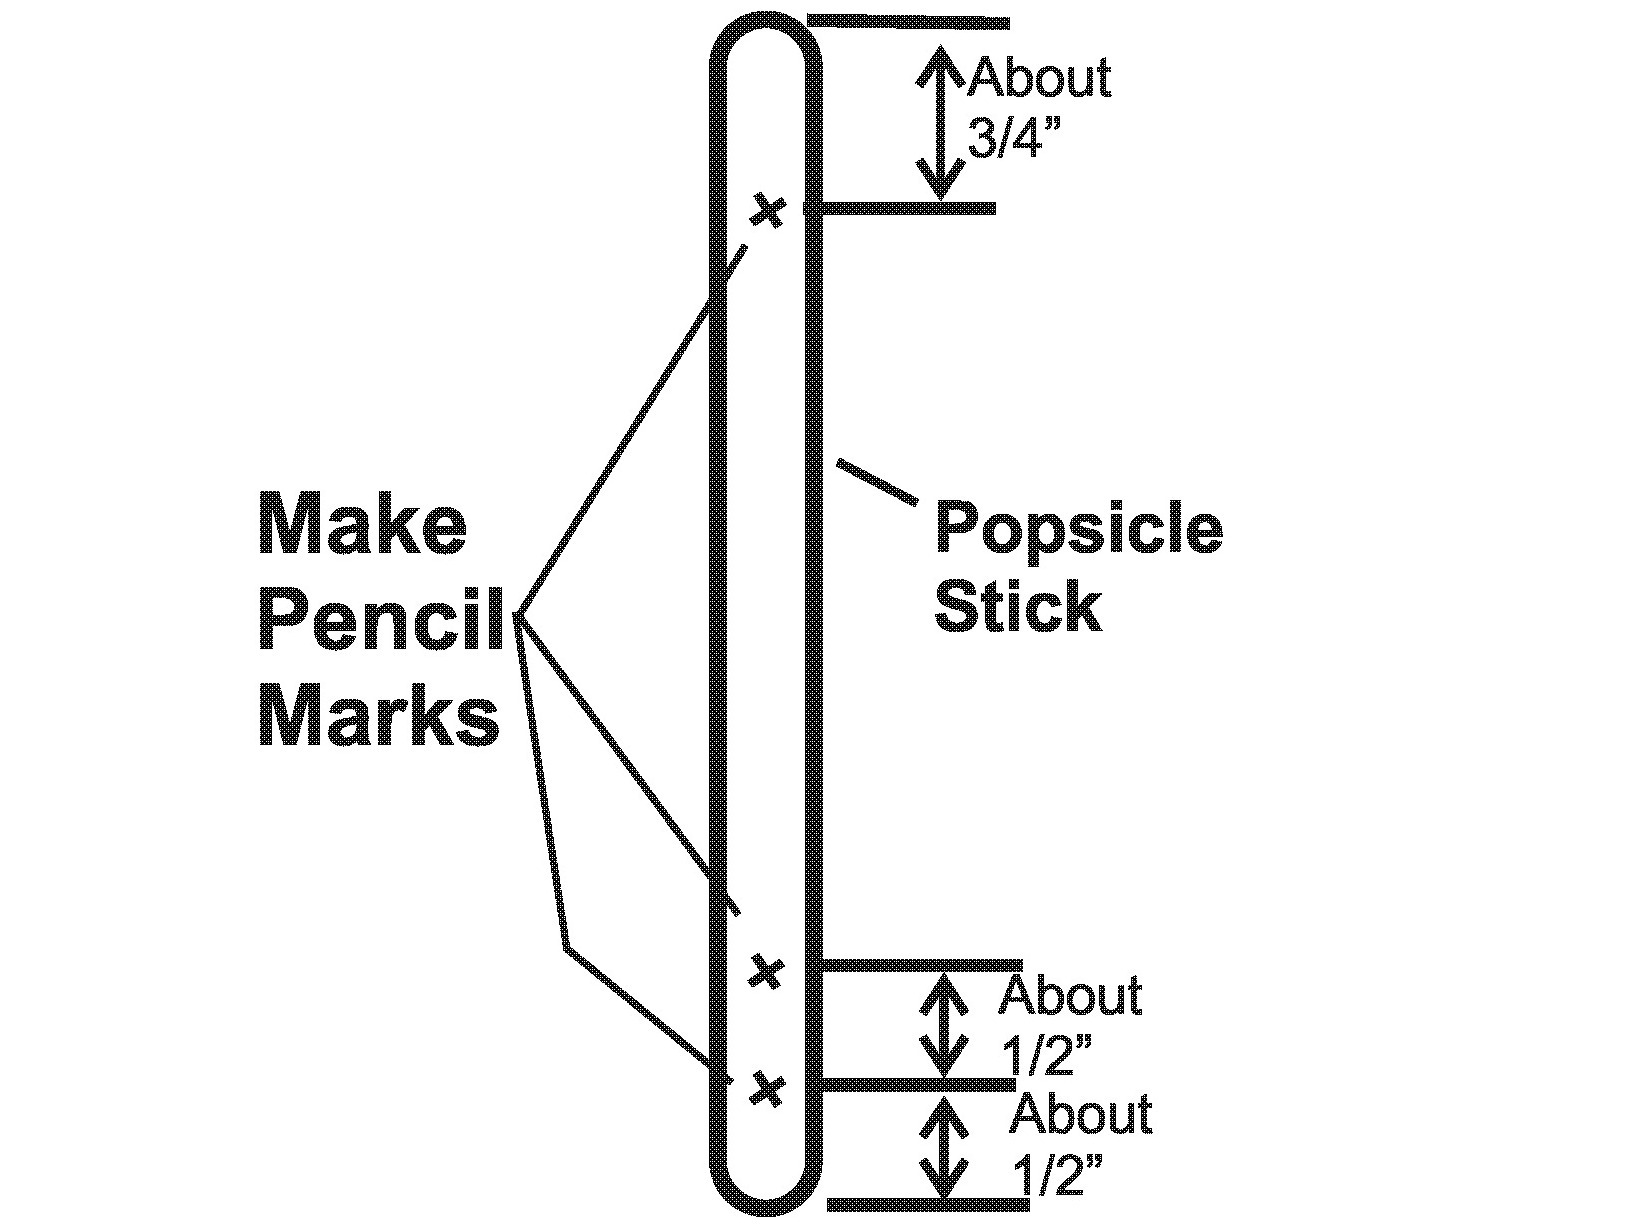 Popsicle Stick Switch